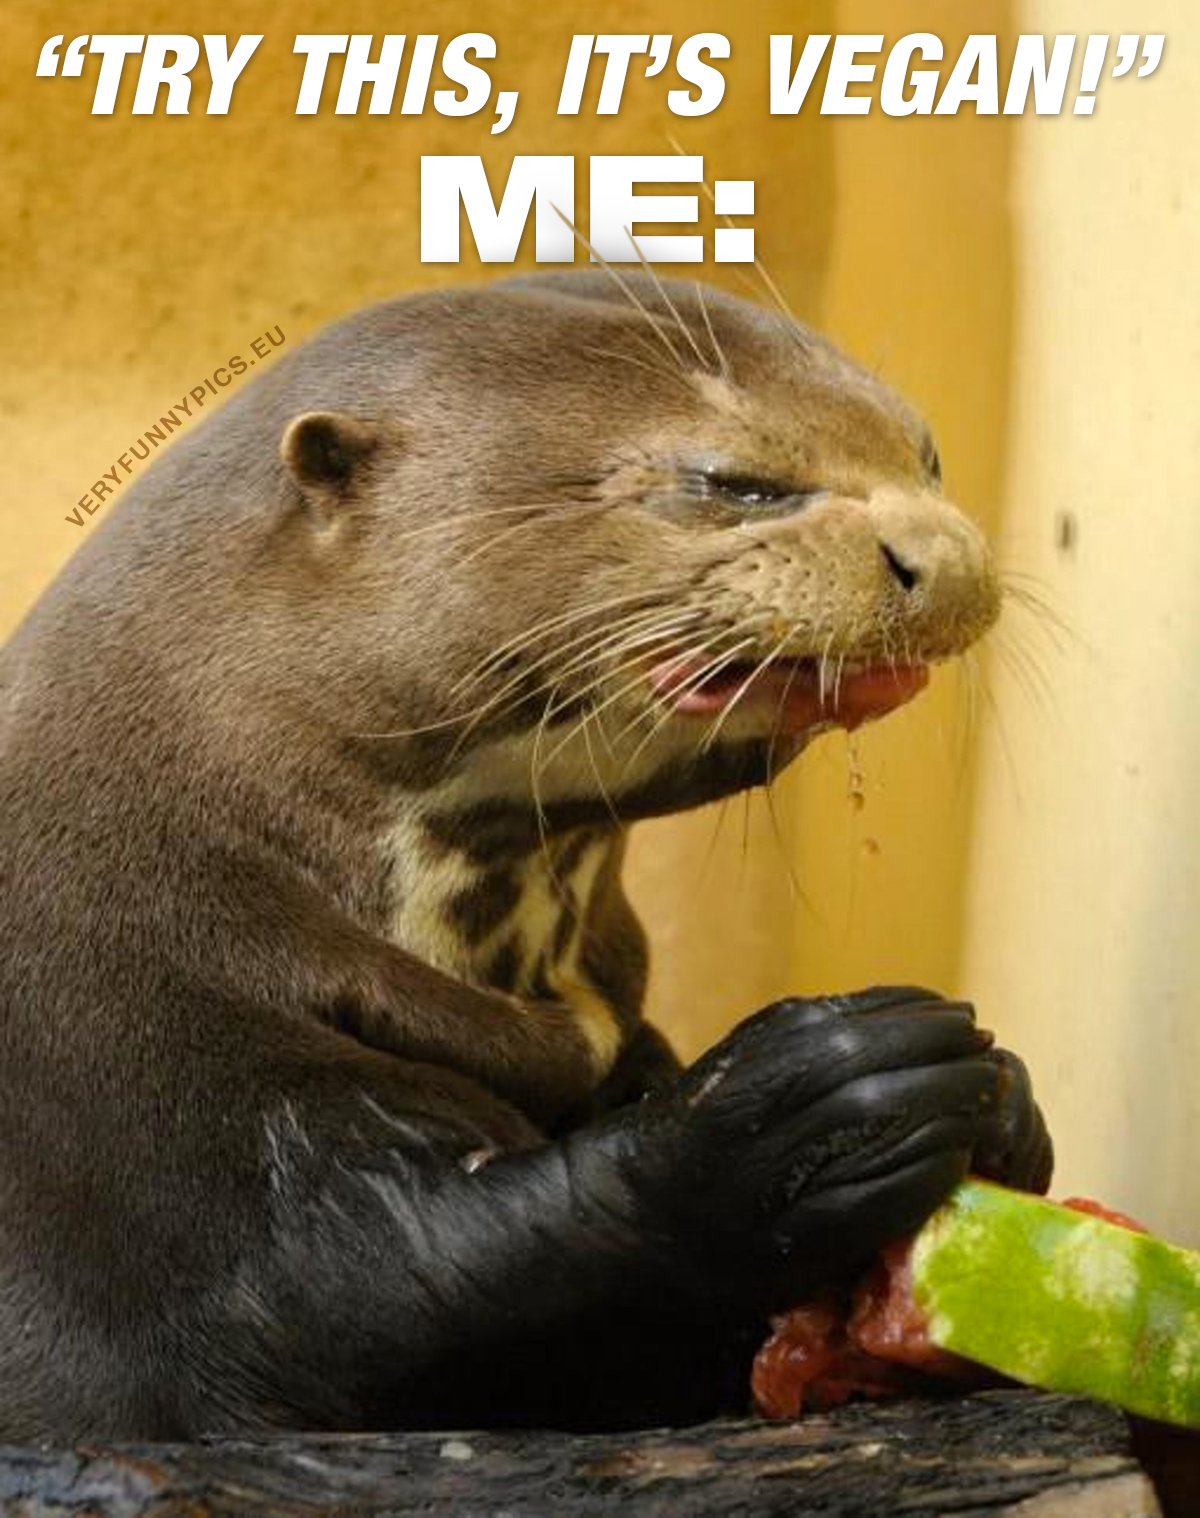 Grumpy otter eating water melon